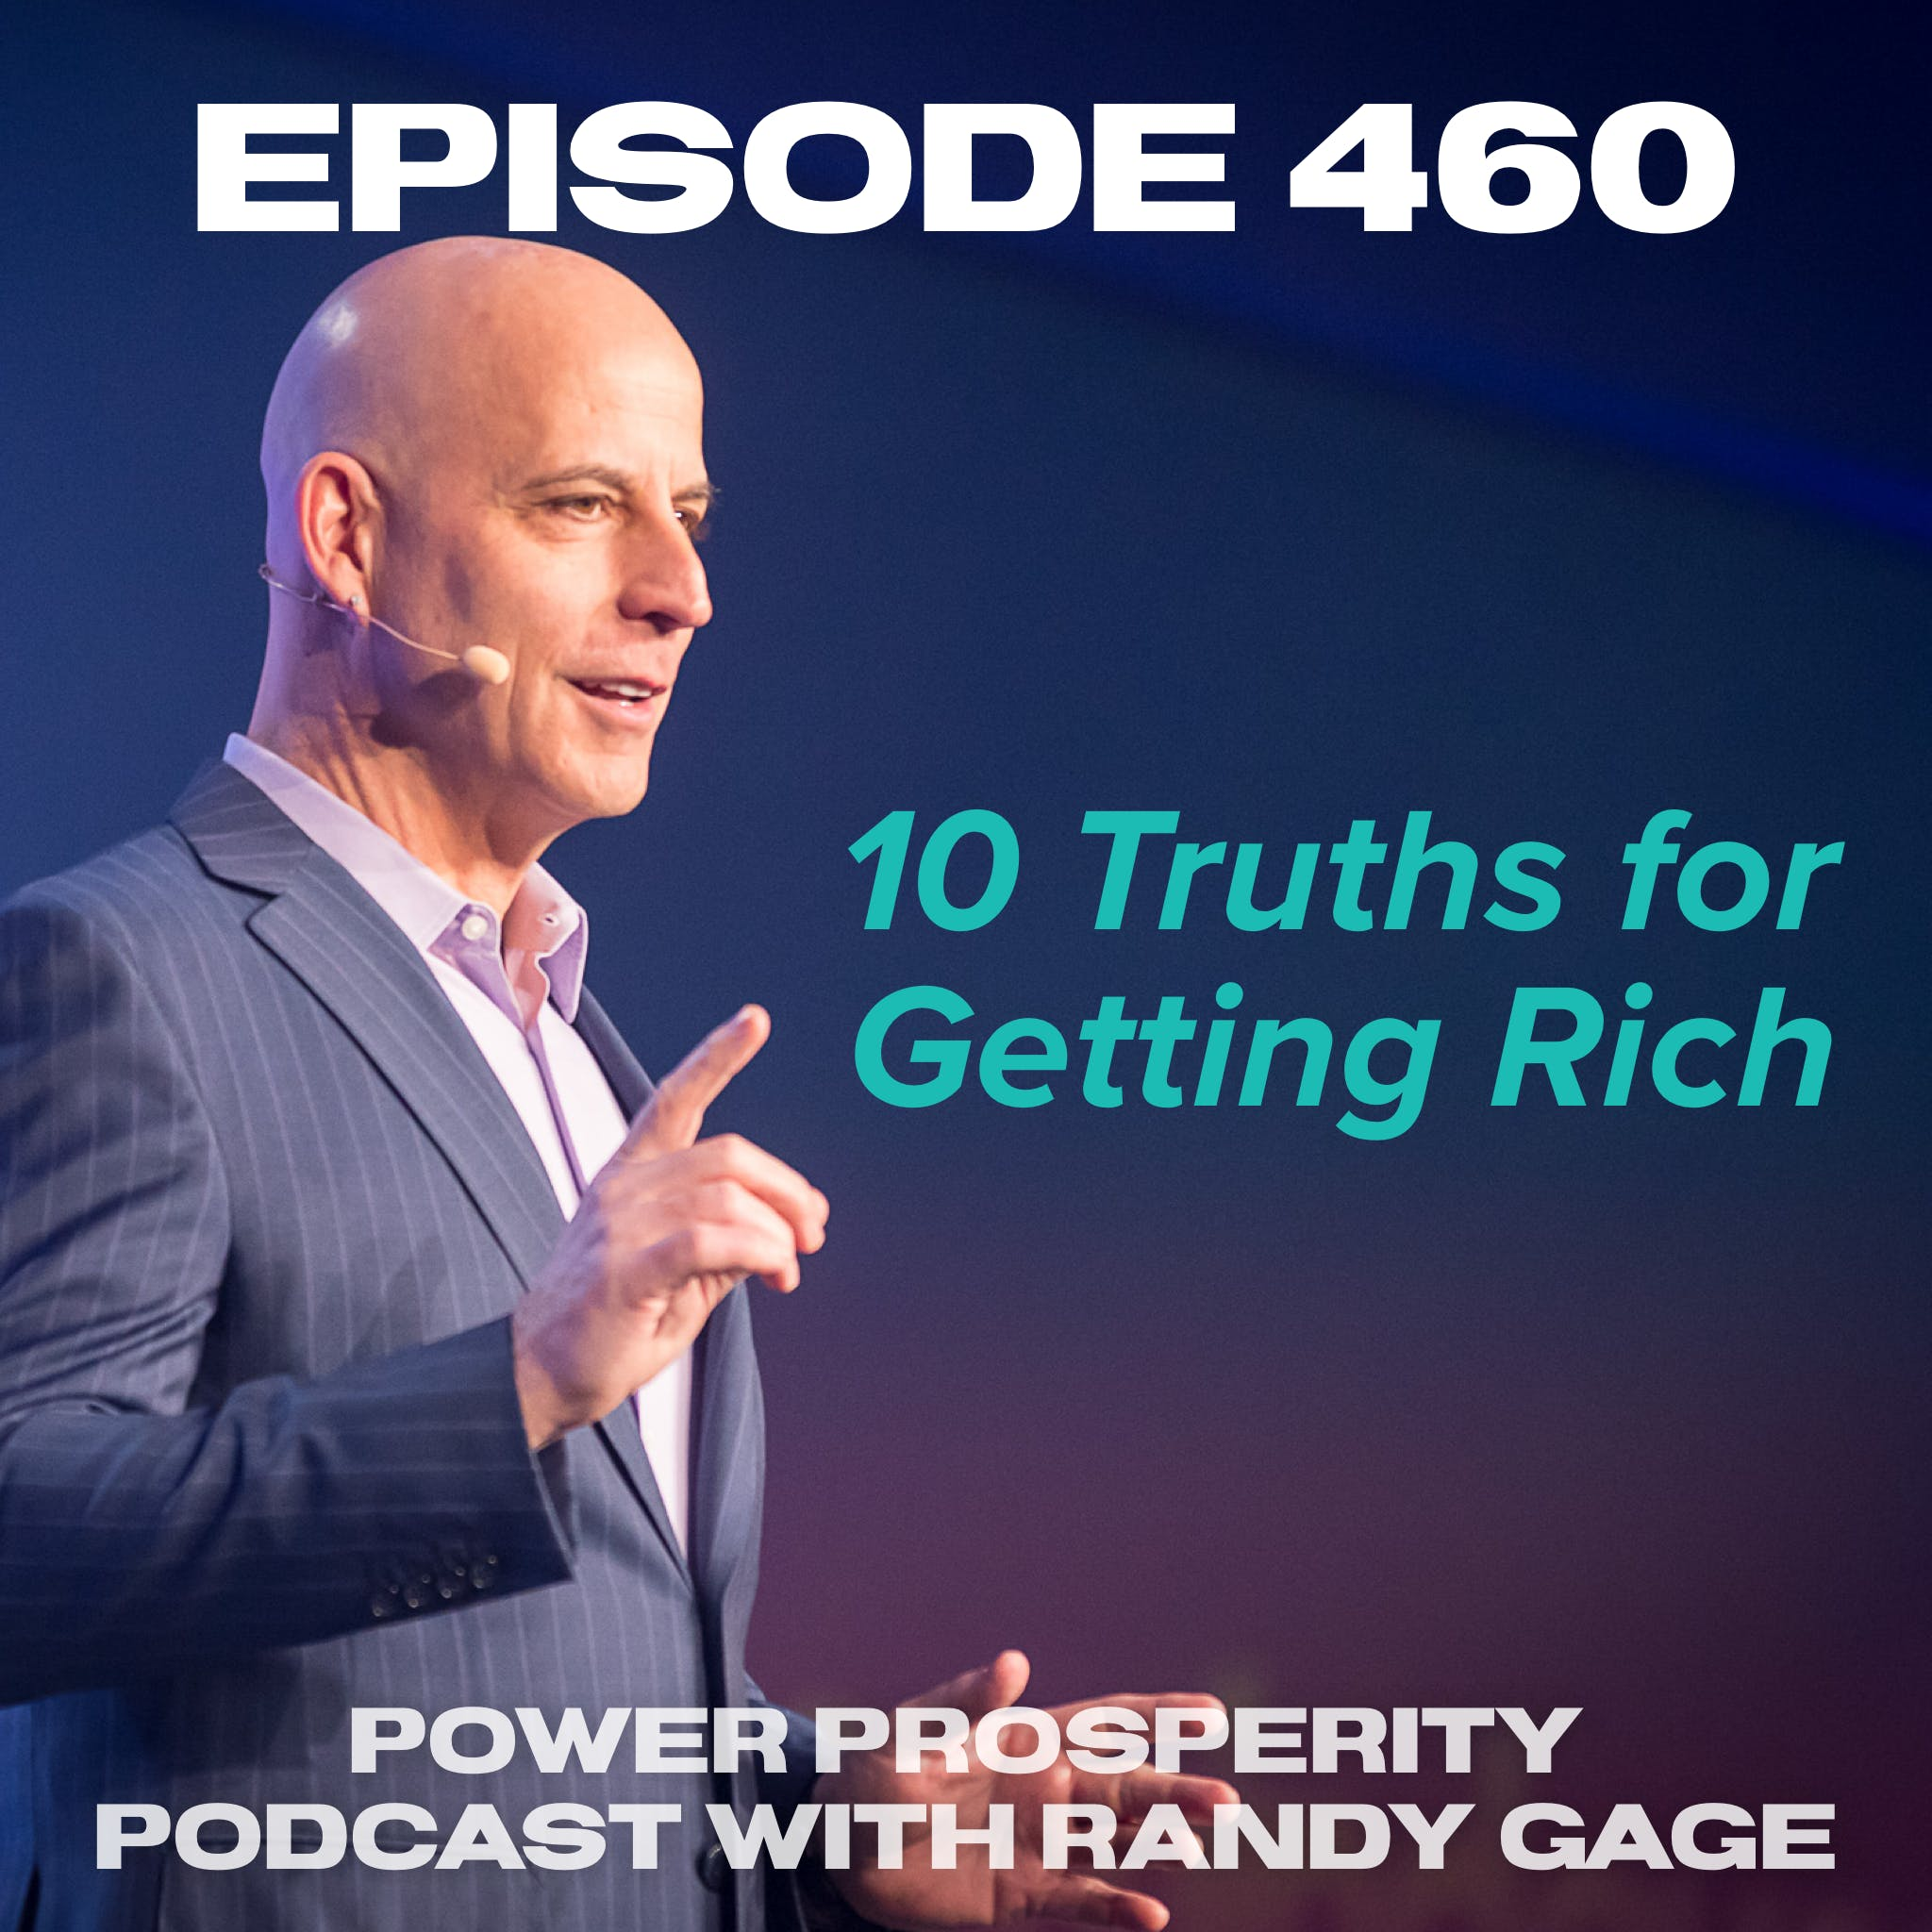 Episode 460: 10 Truths for Getting Rich